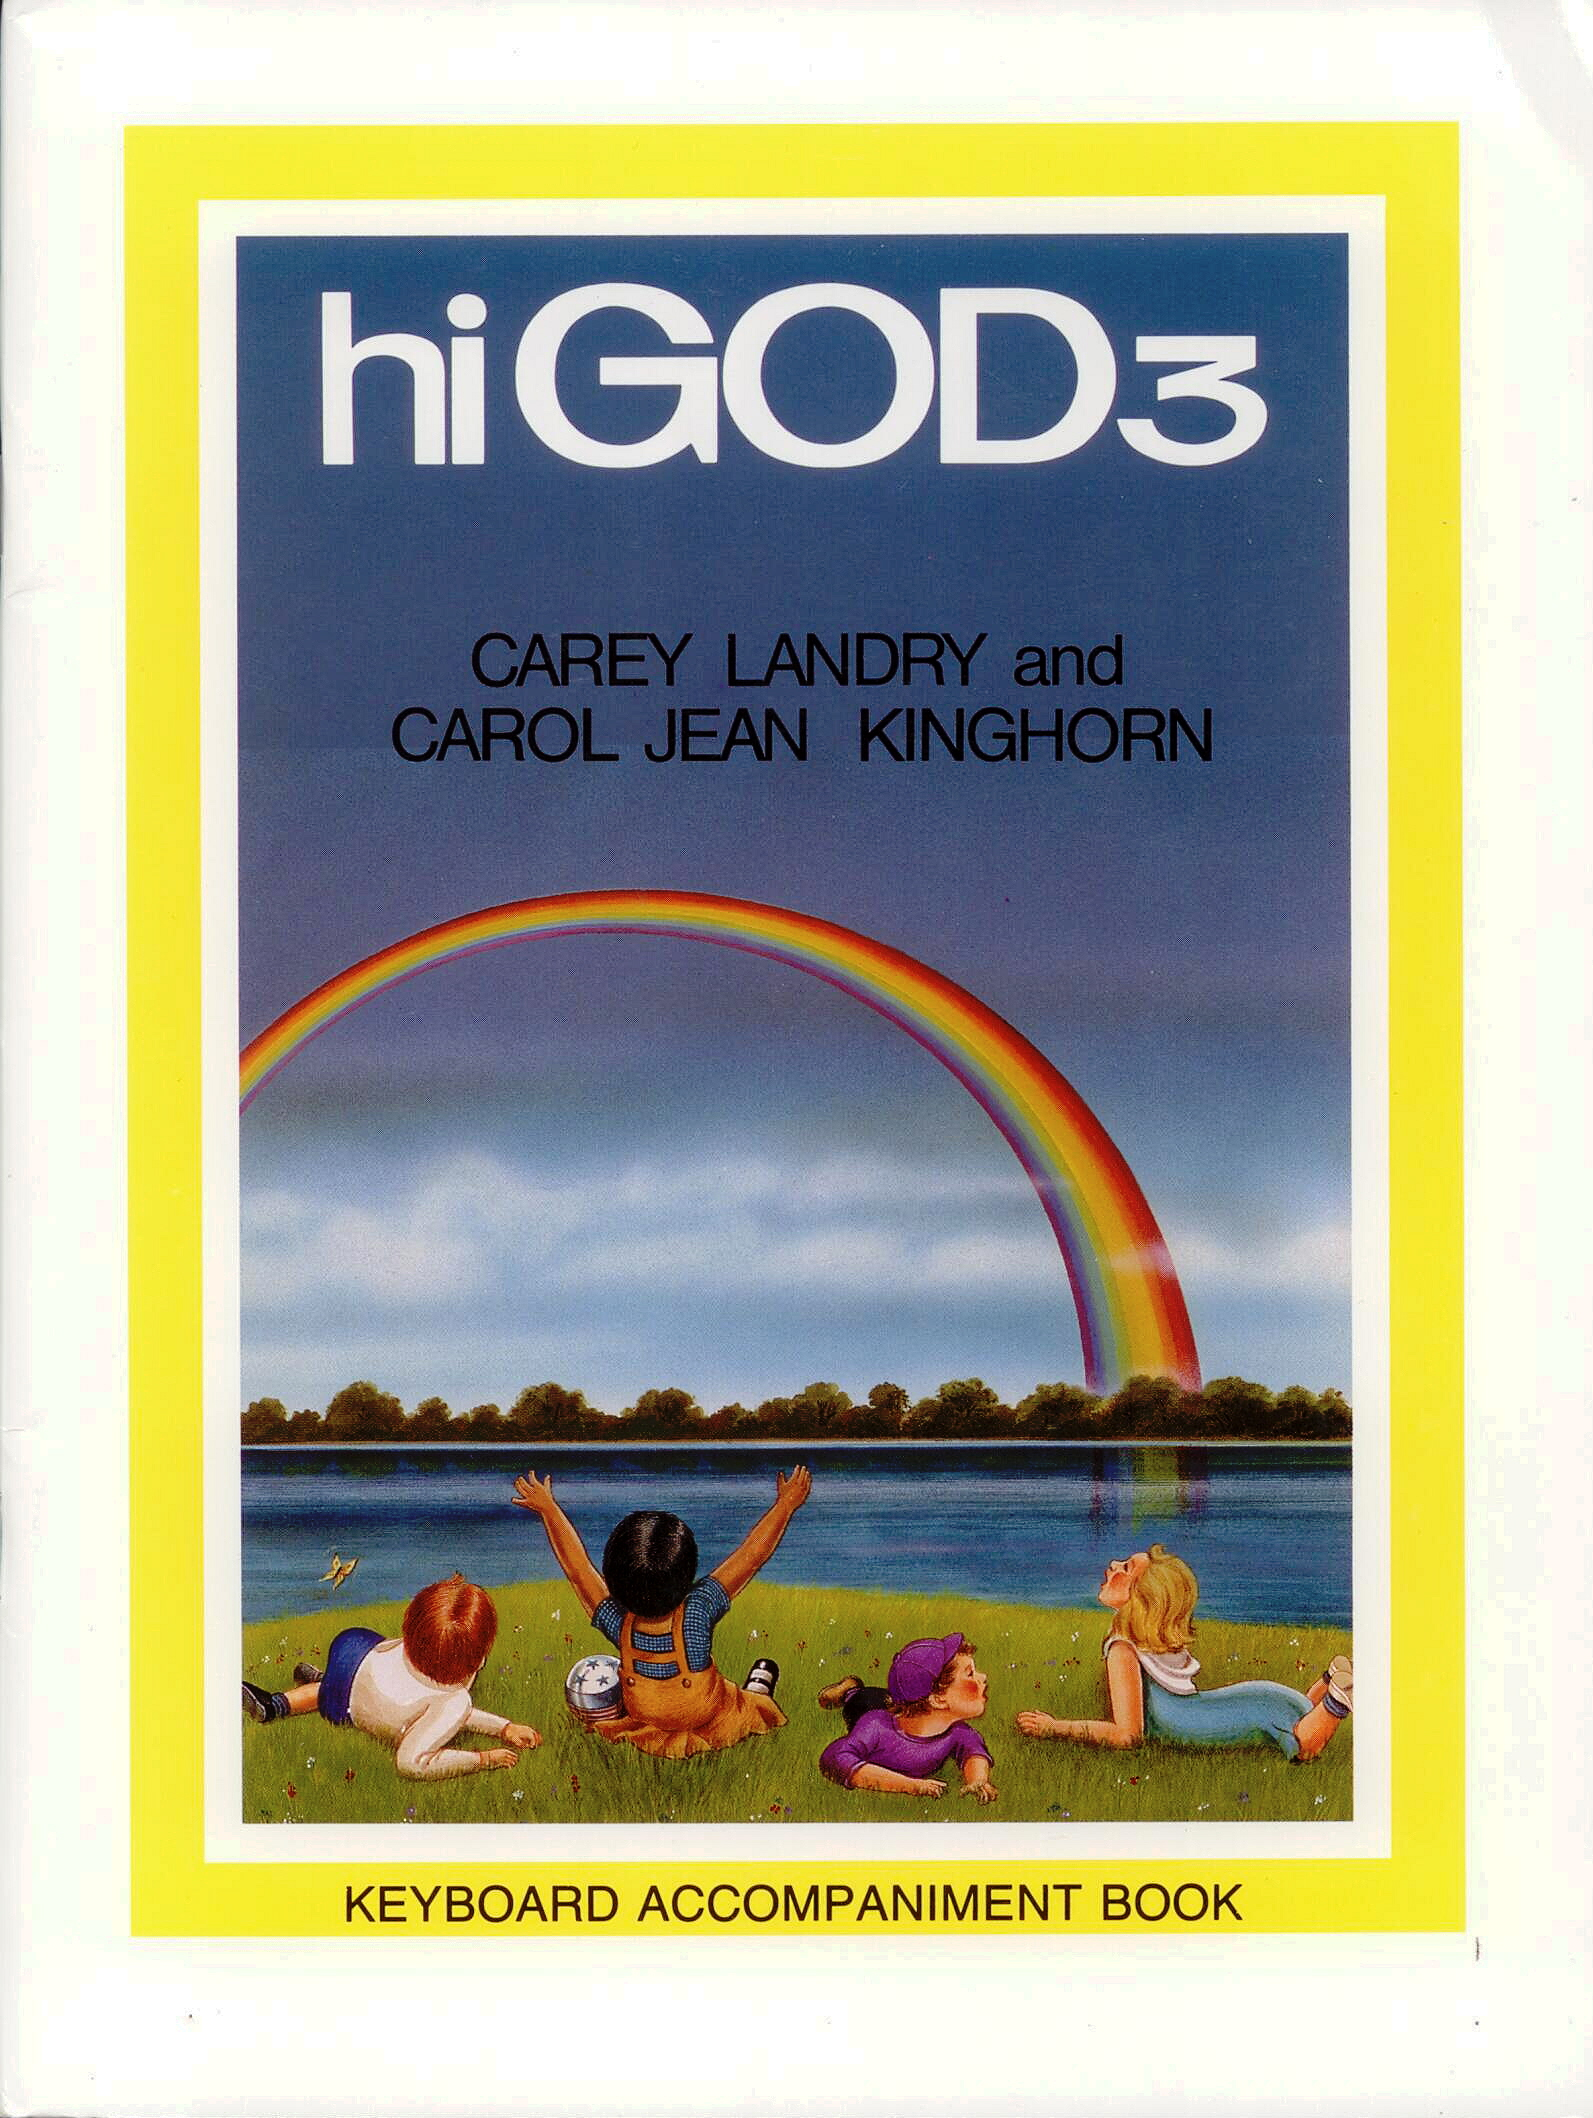 Hi God 3 Accompaniment Book, Title; Carey Landry, Carol Kinghorn, Artists